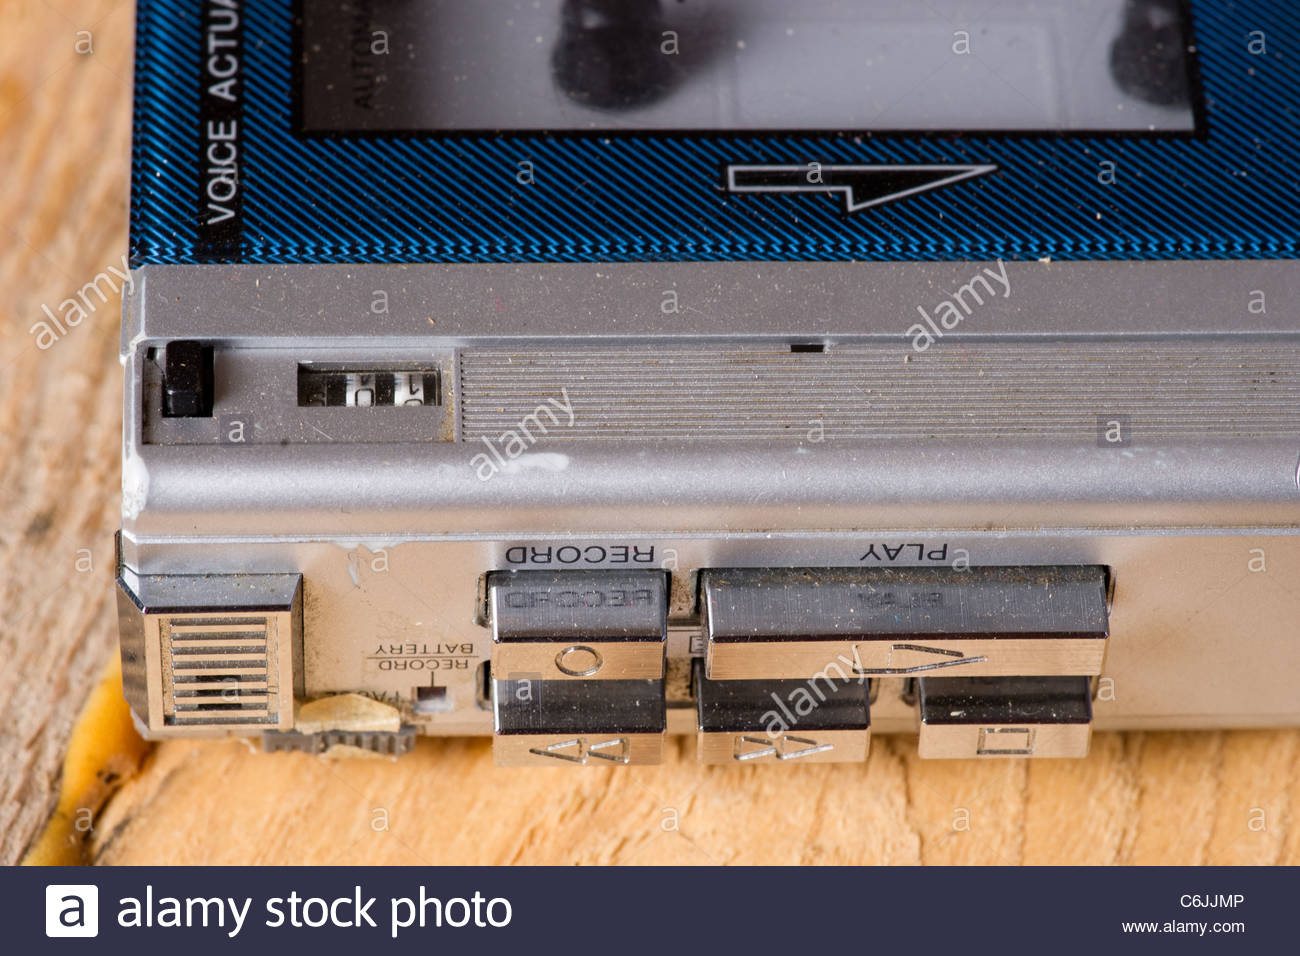 Cassette tape recorder Stock Photo